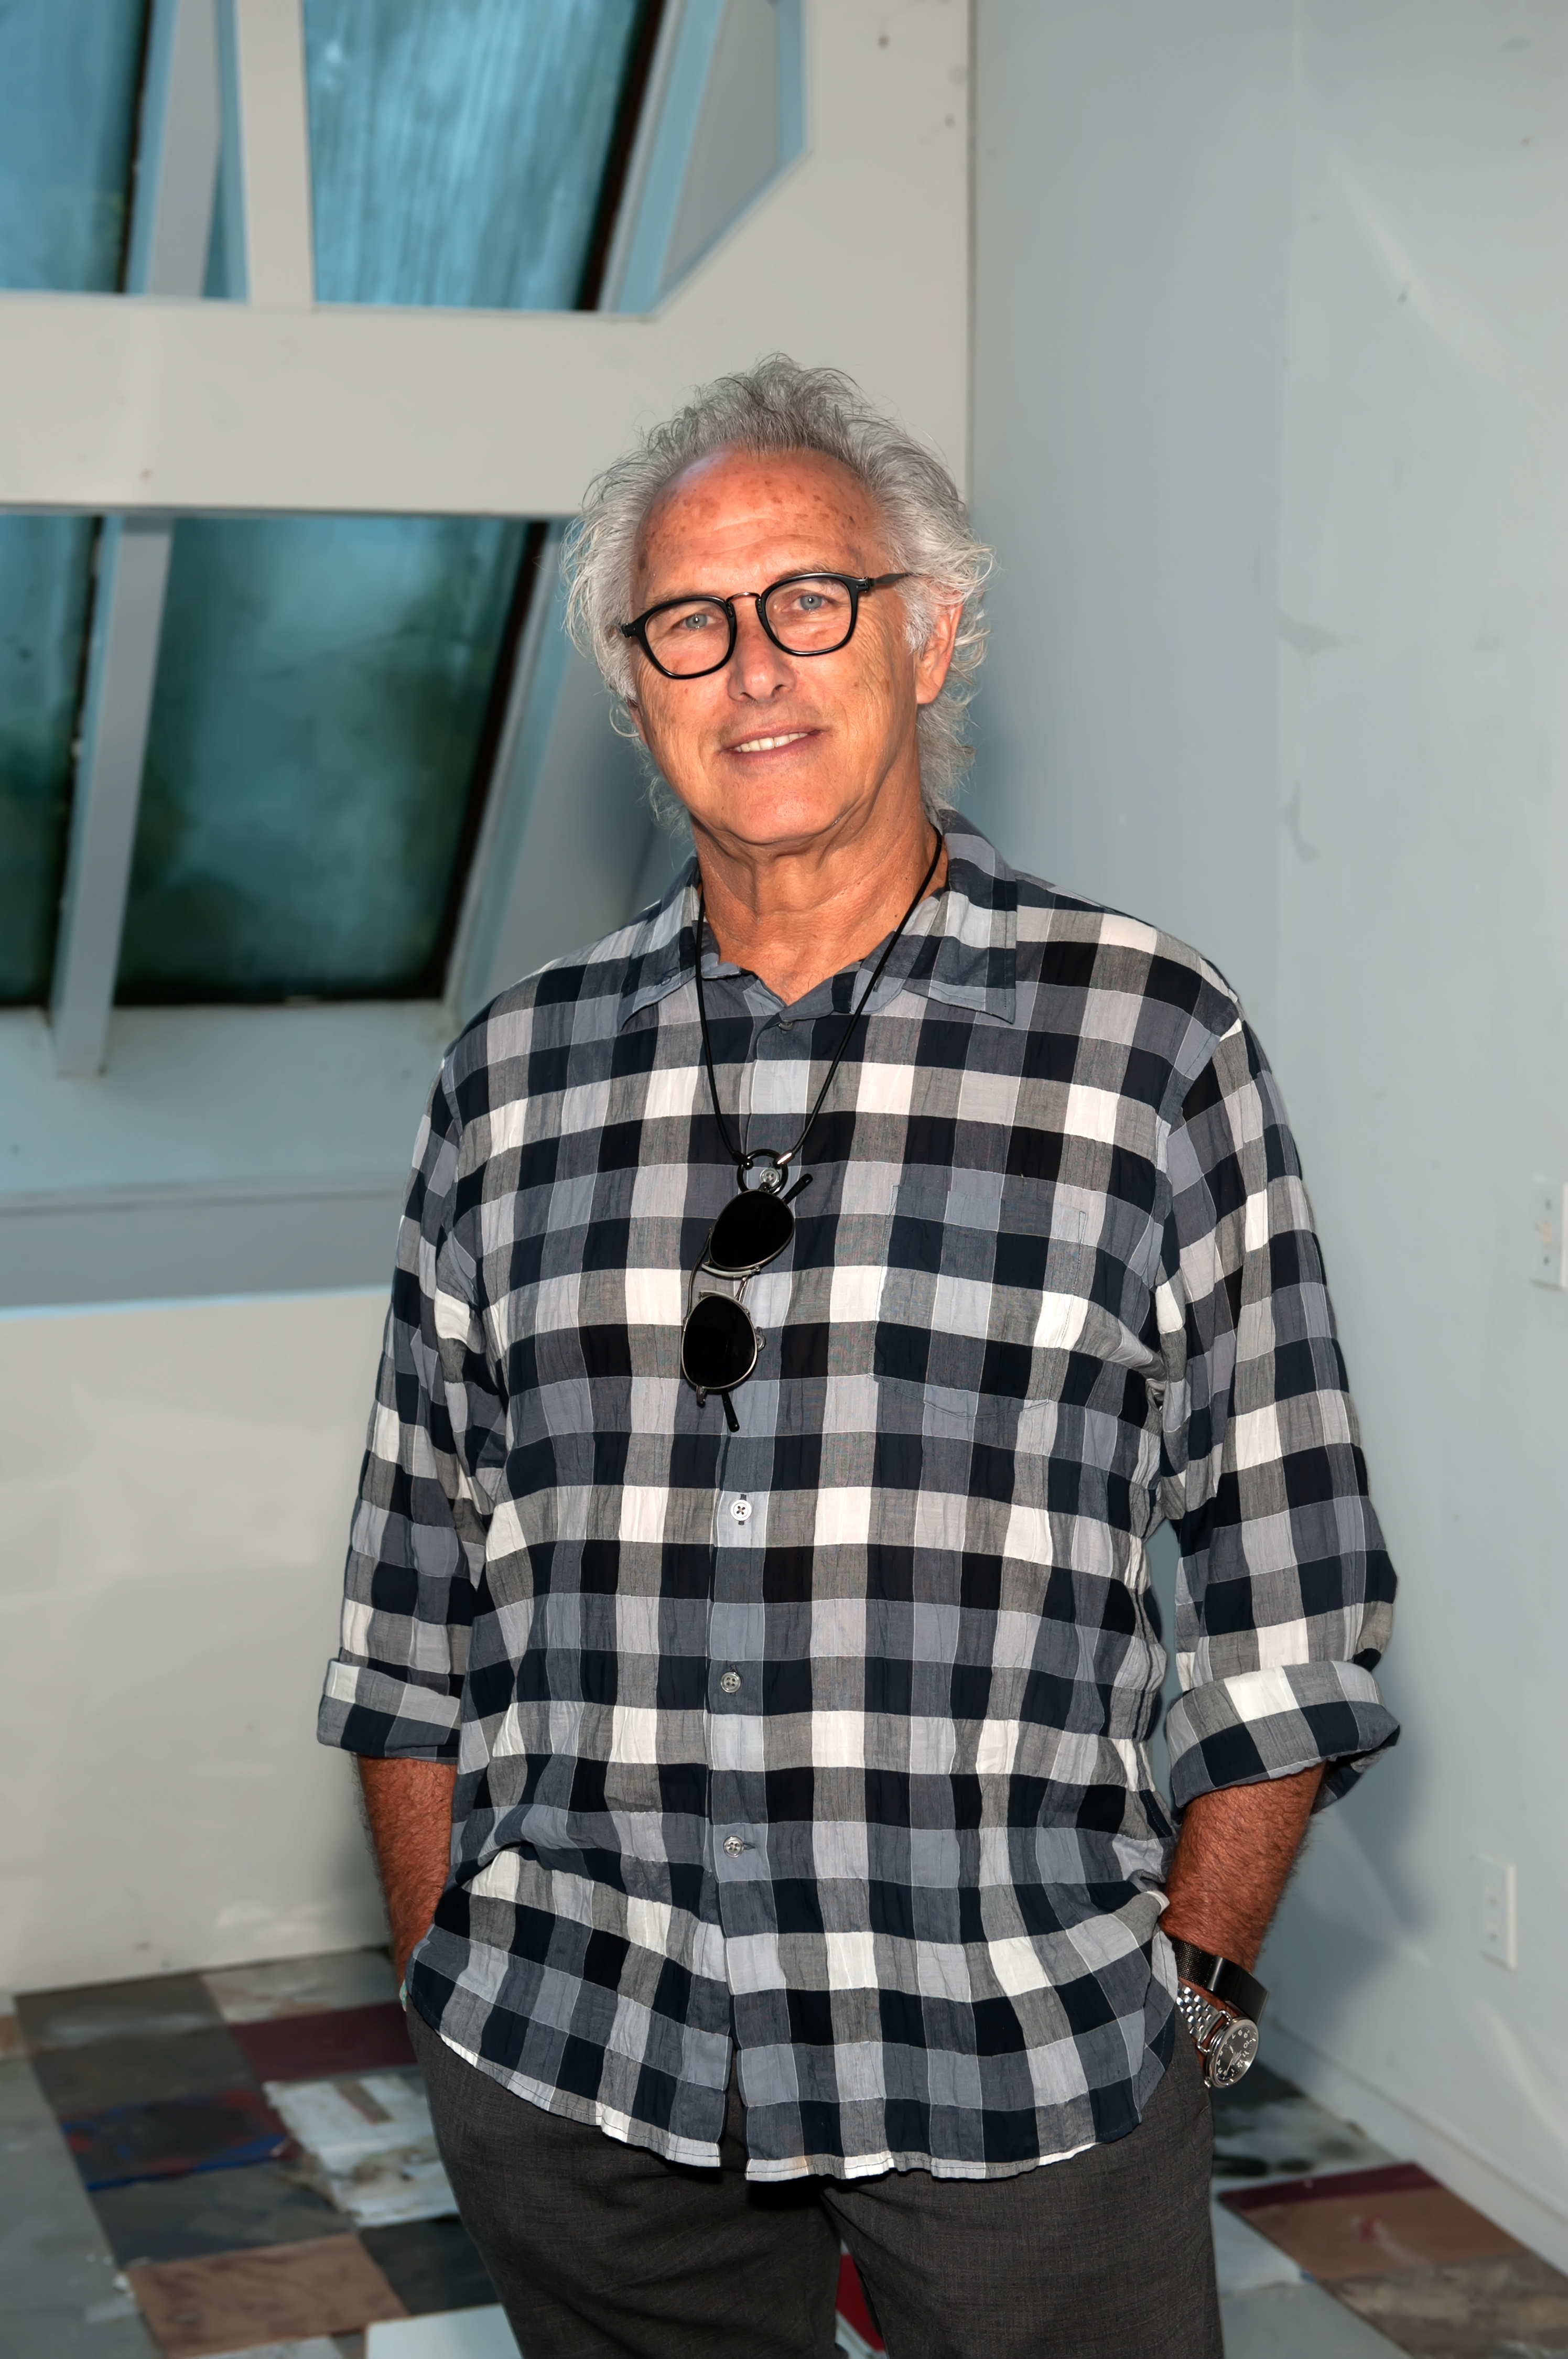 PURIST + Dallas Contemporary Function for Eric Fischl ... Beautycounter